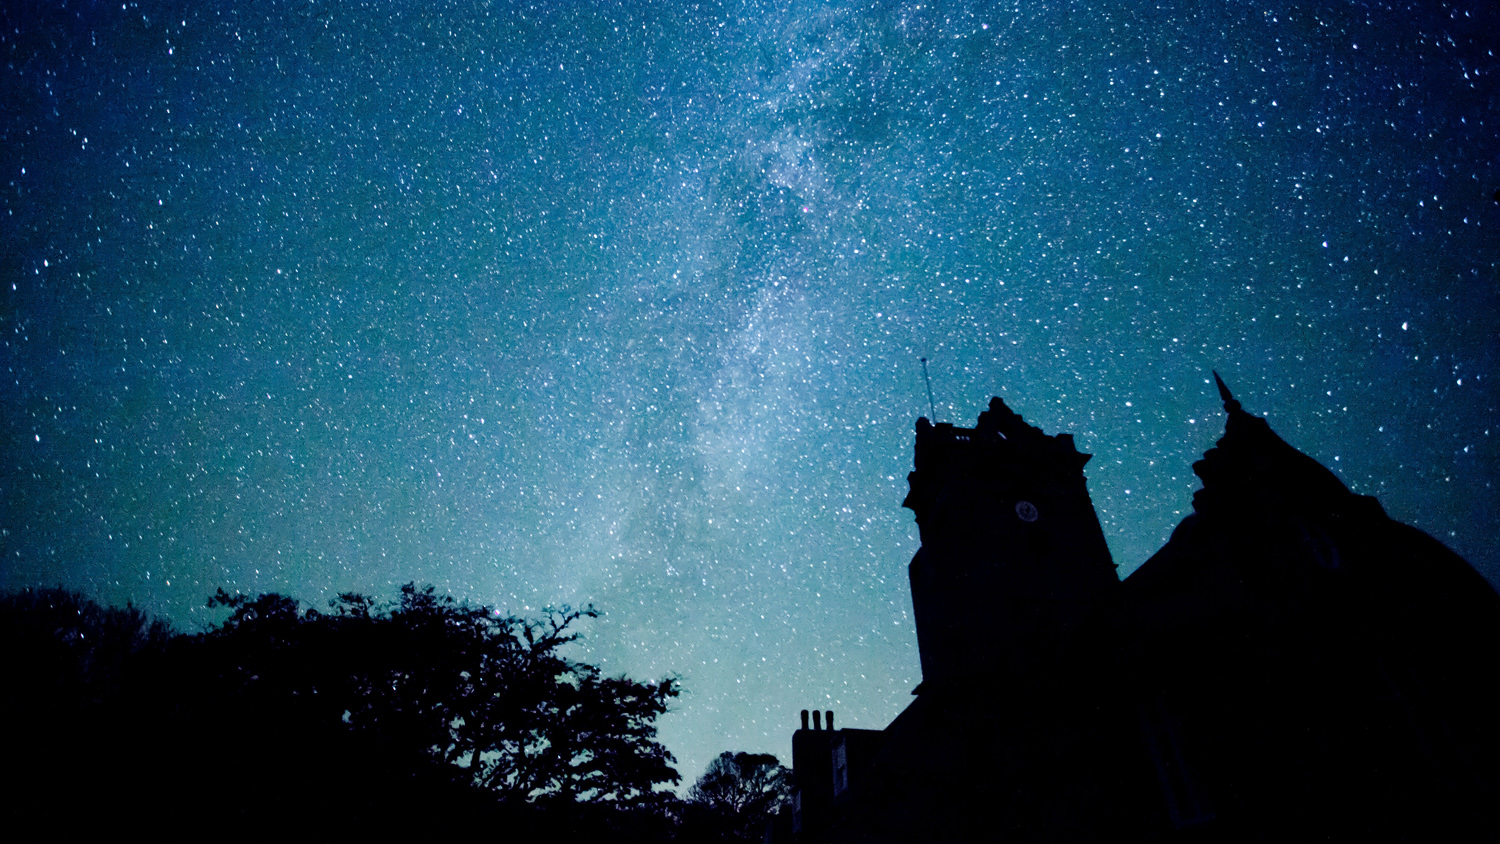 The Milky Way over La Seigneurie